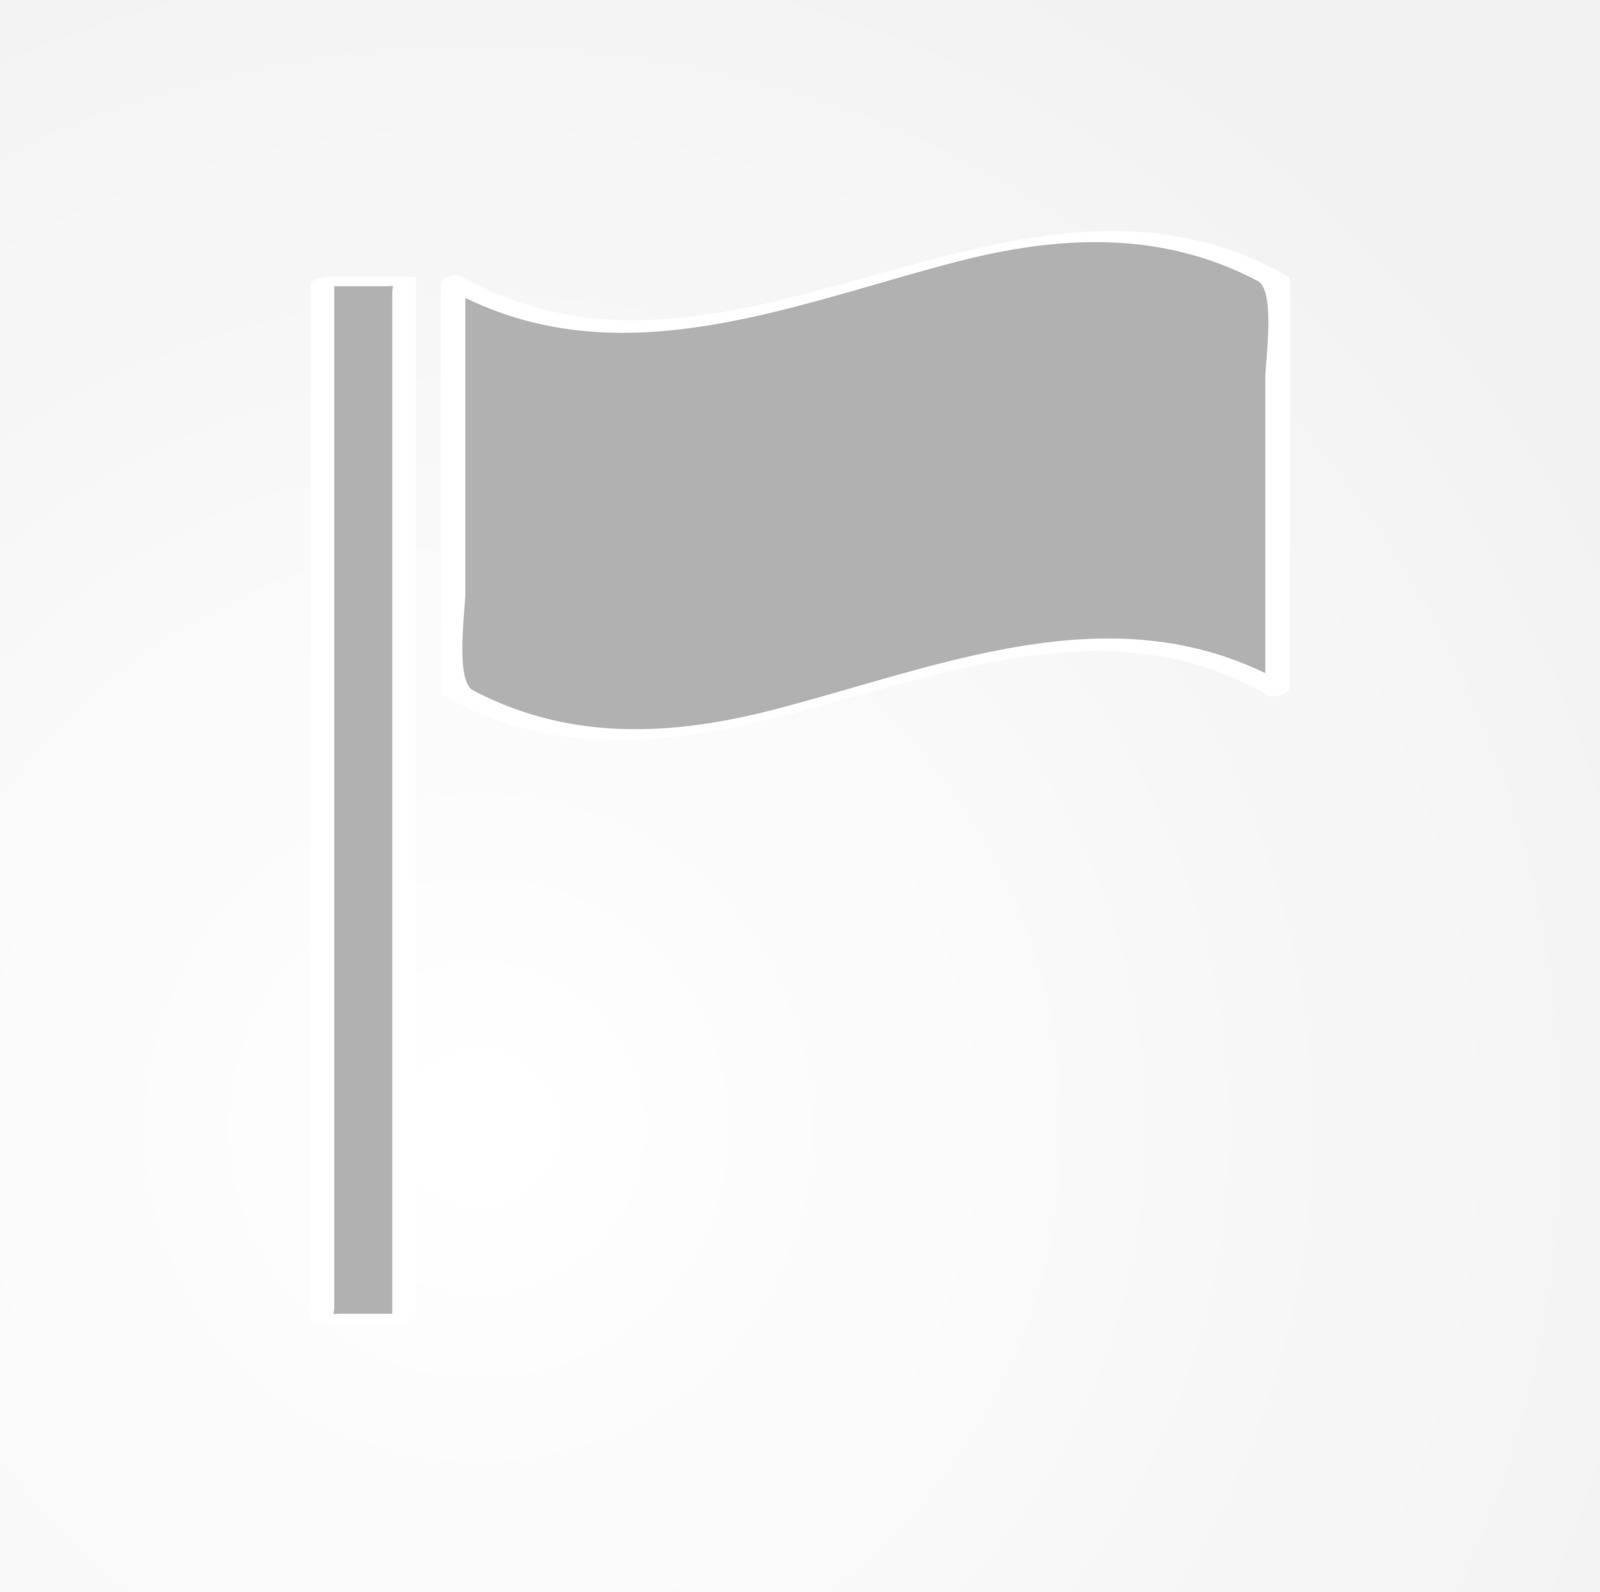 waving gray flag on gray gradient background